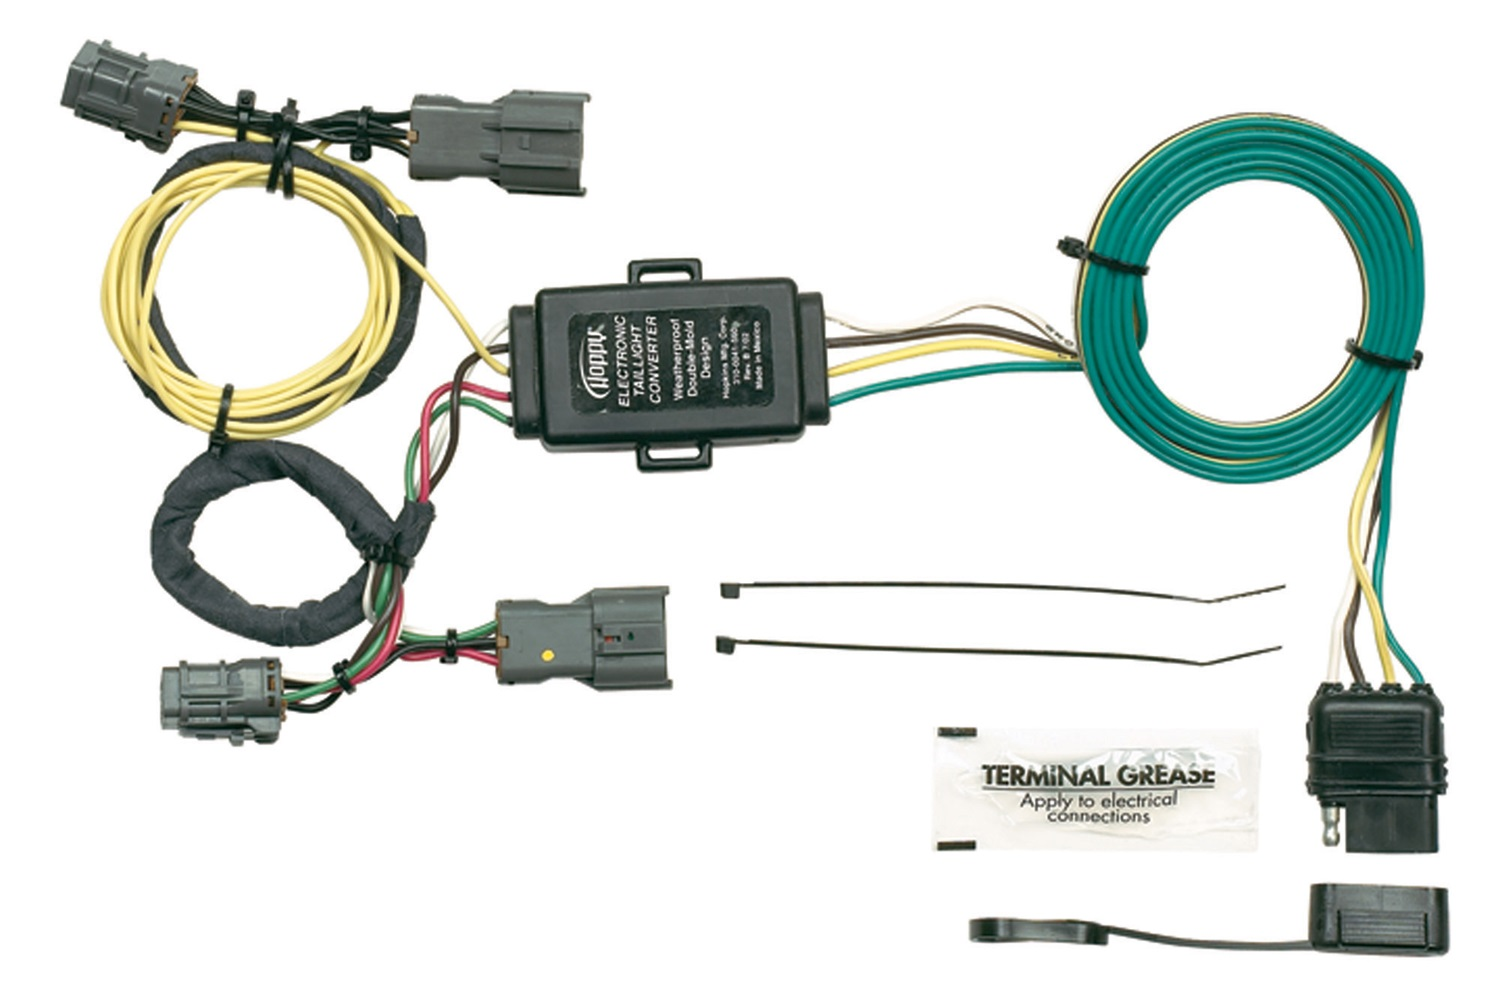 hopkins wiring harnesses towing solutions trailer harness kit animal cell diagram worksheet answers solution 43925 plug in simple vehicle to